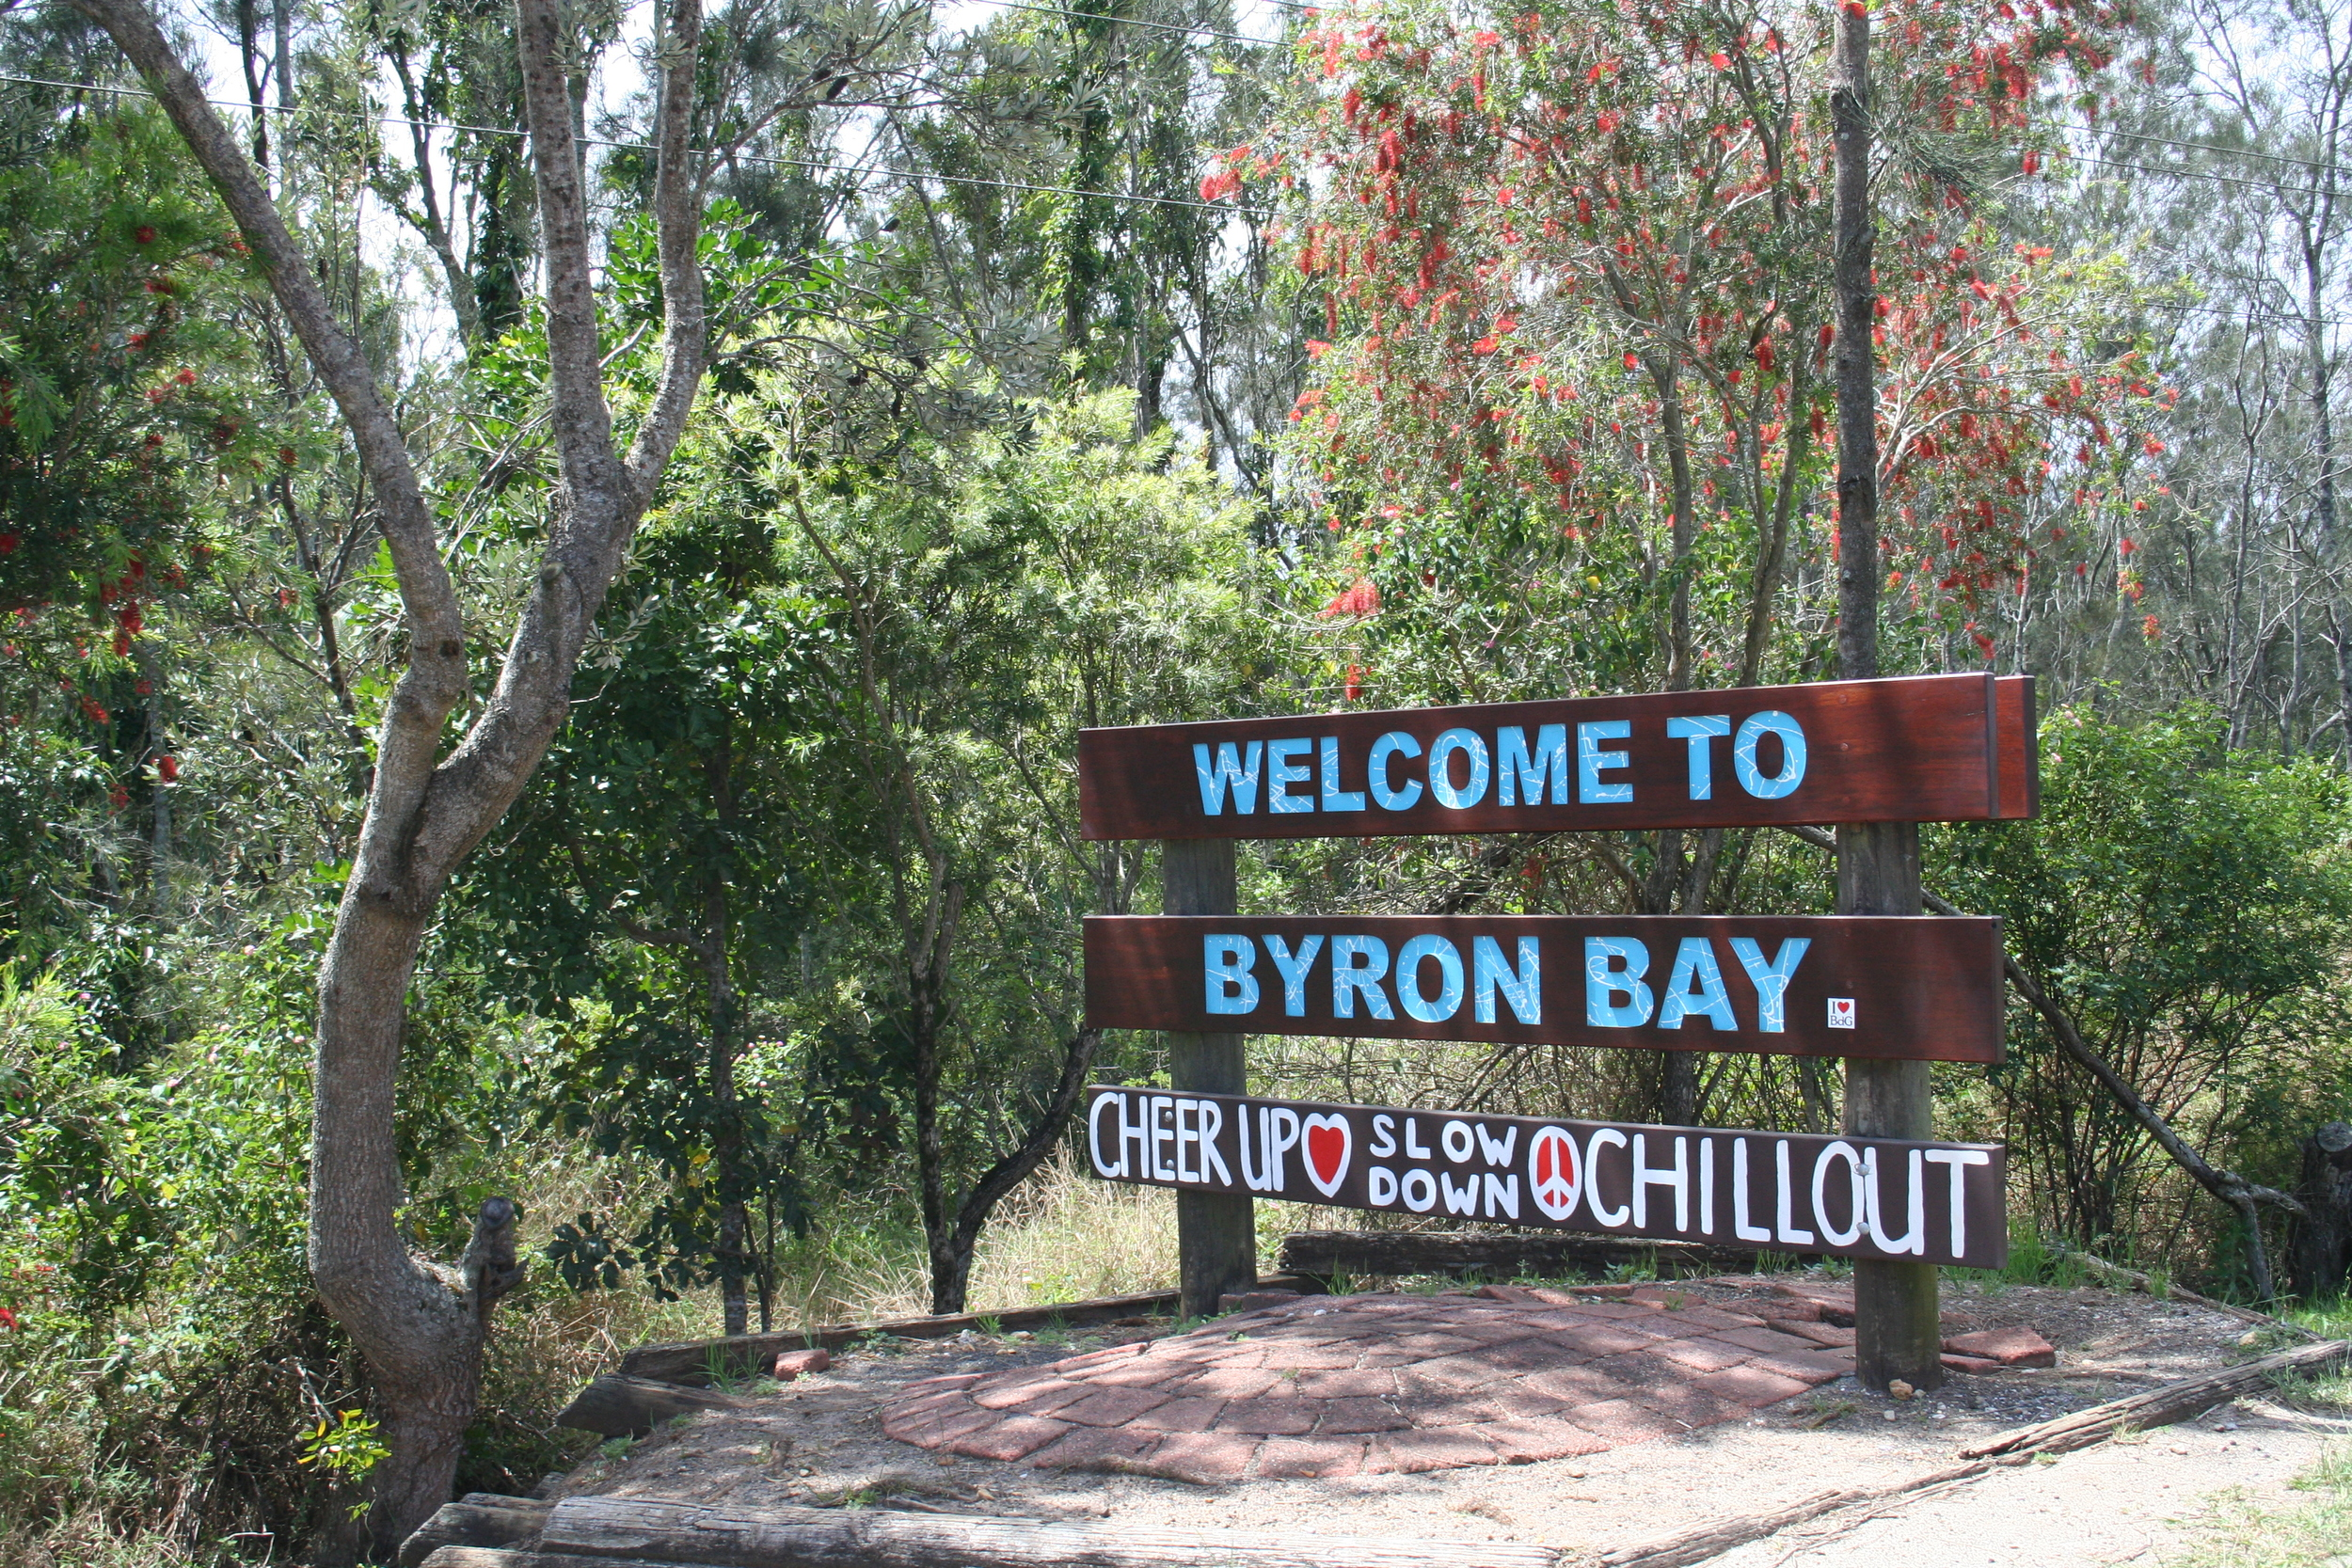 Byron Bay - Cheer up, slow down, chill out!